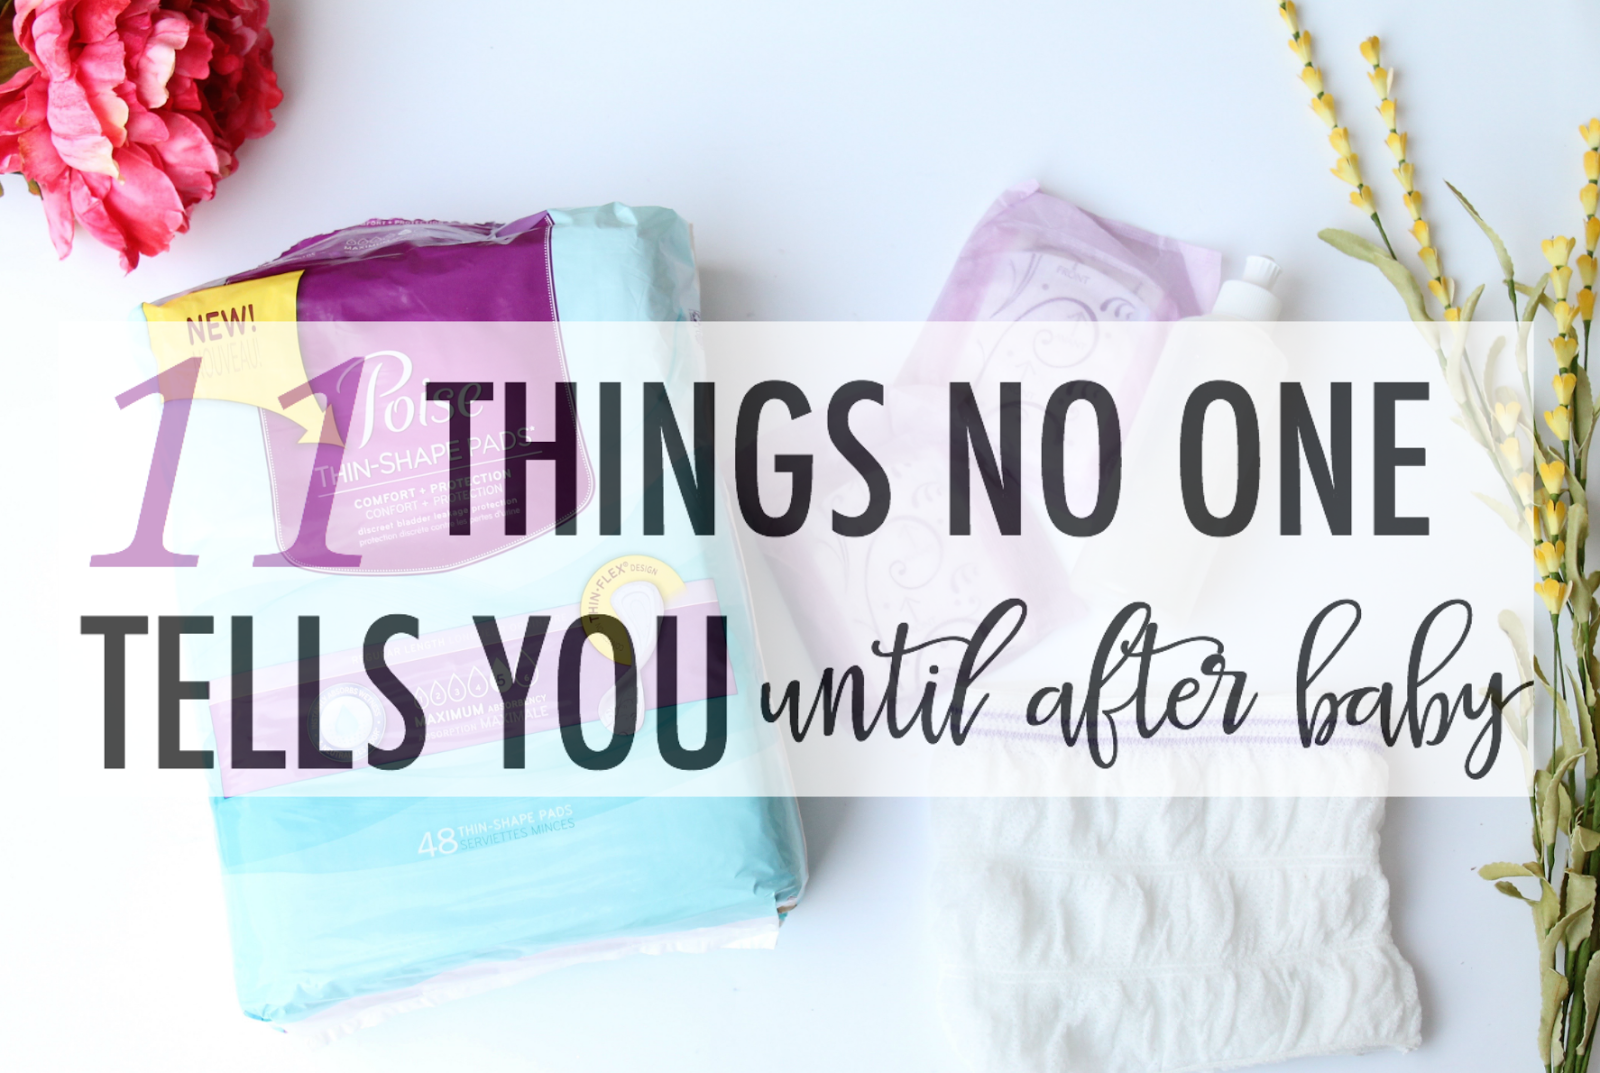 11 Things No One Tells You Until After Baby